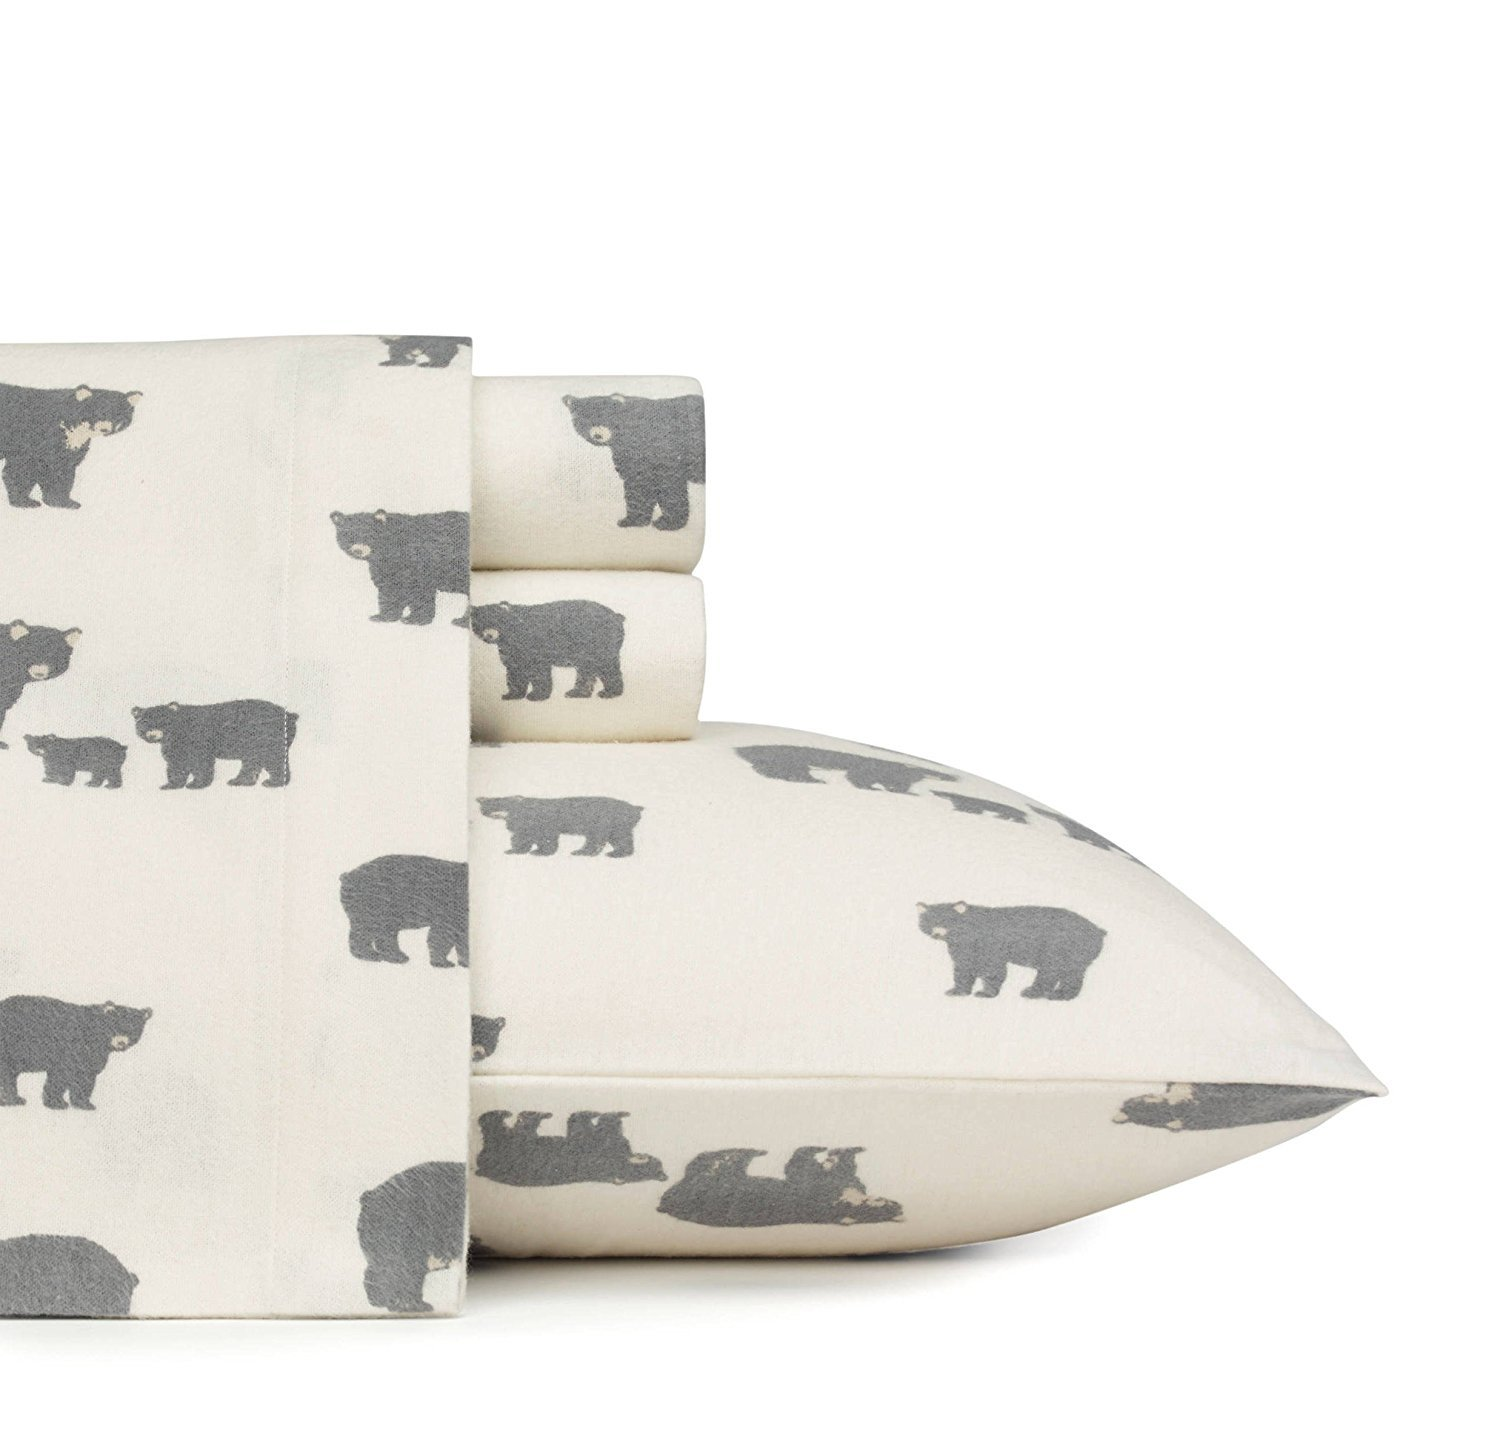 MISC 4pc Ivory Cozy Black Wild Bears Theme Sheets Set Full Sized, Elasticized Fitted,, Deep Pocket, Southwestern, Animal Lodge Cottage, Cotton Flannel